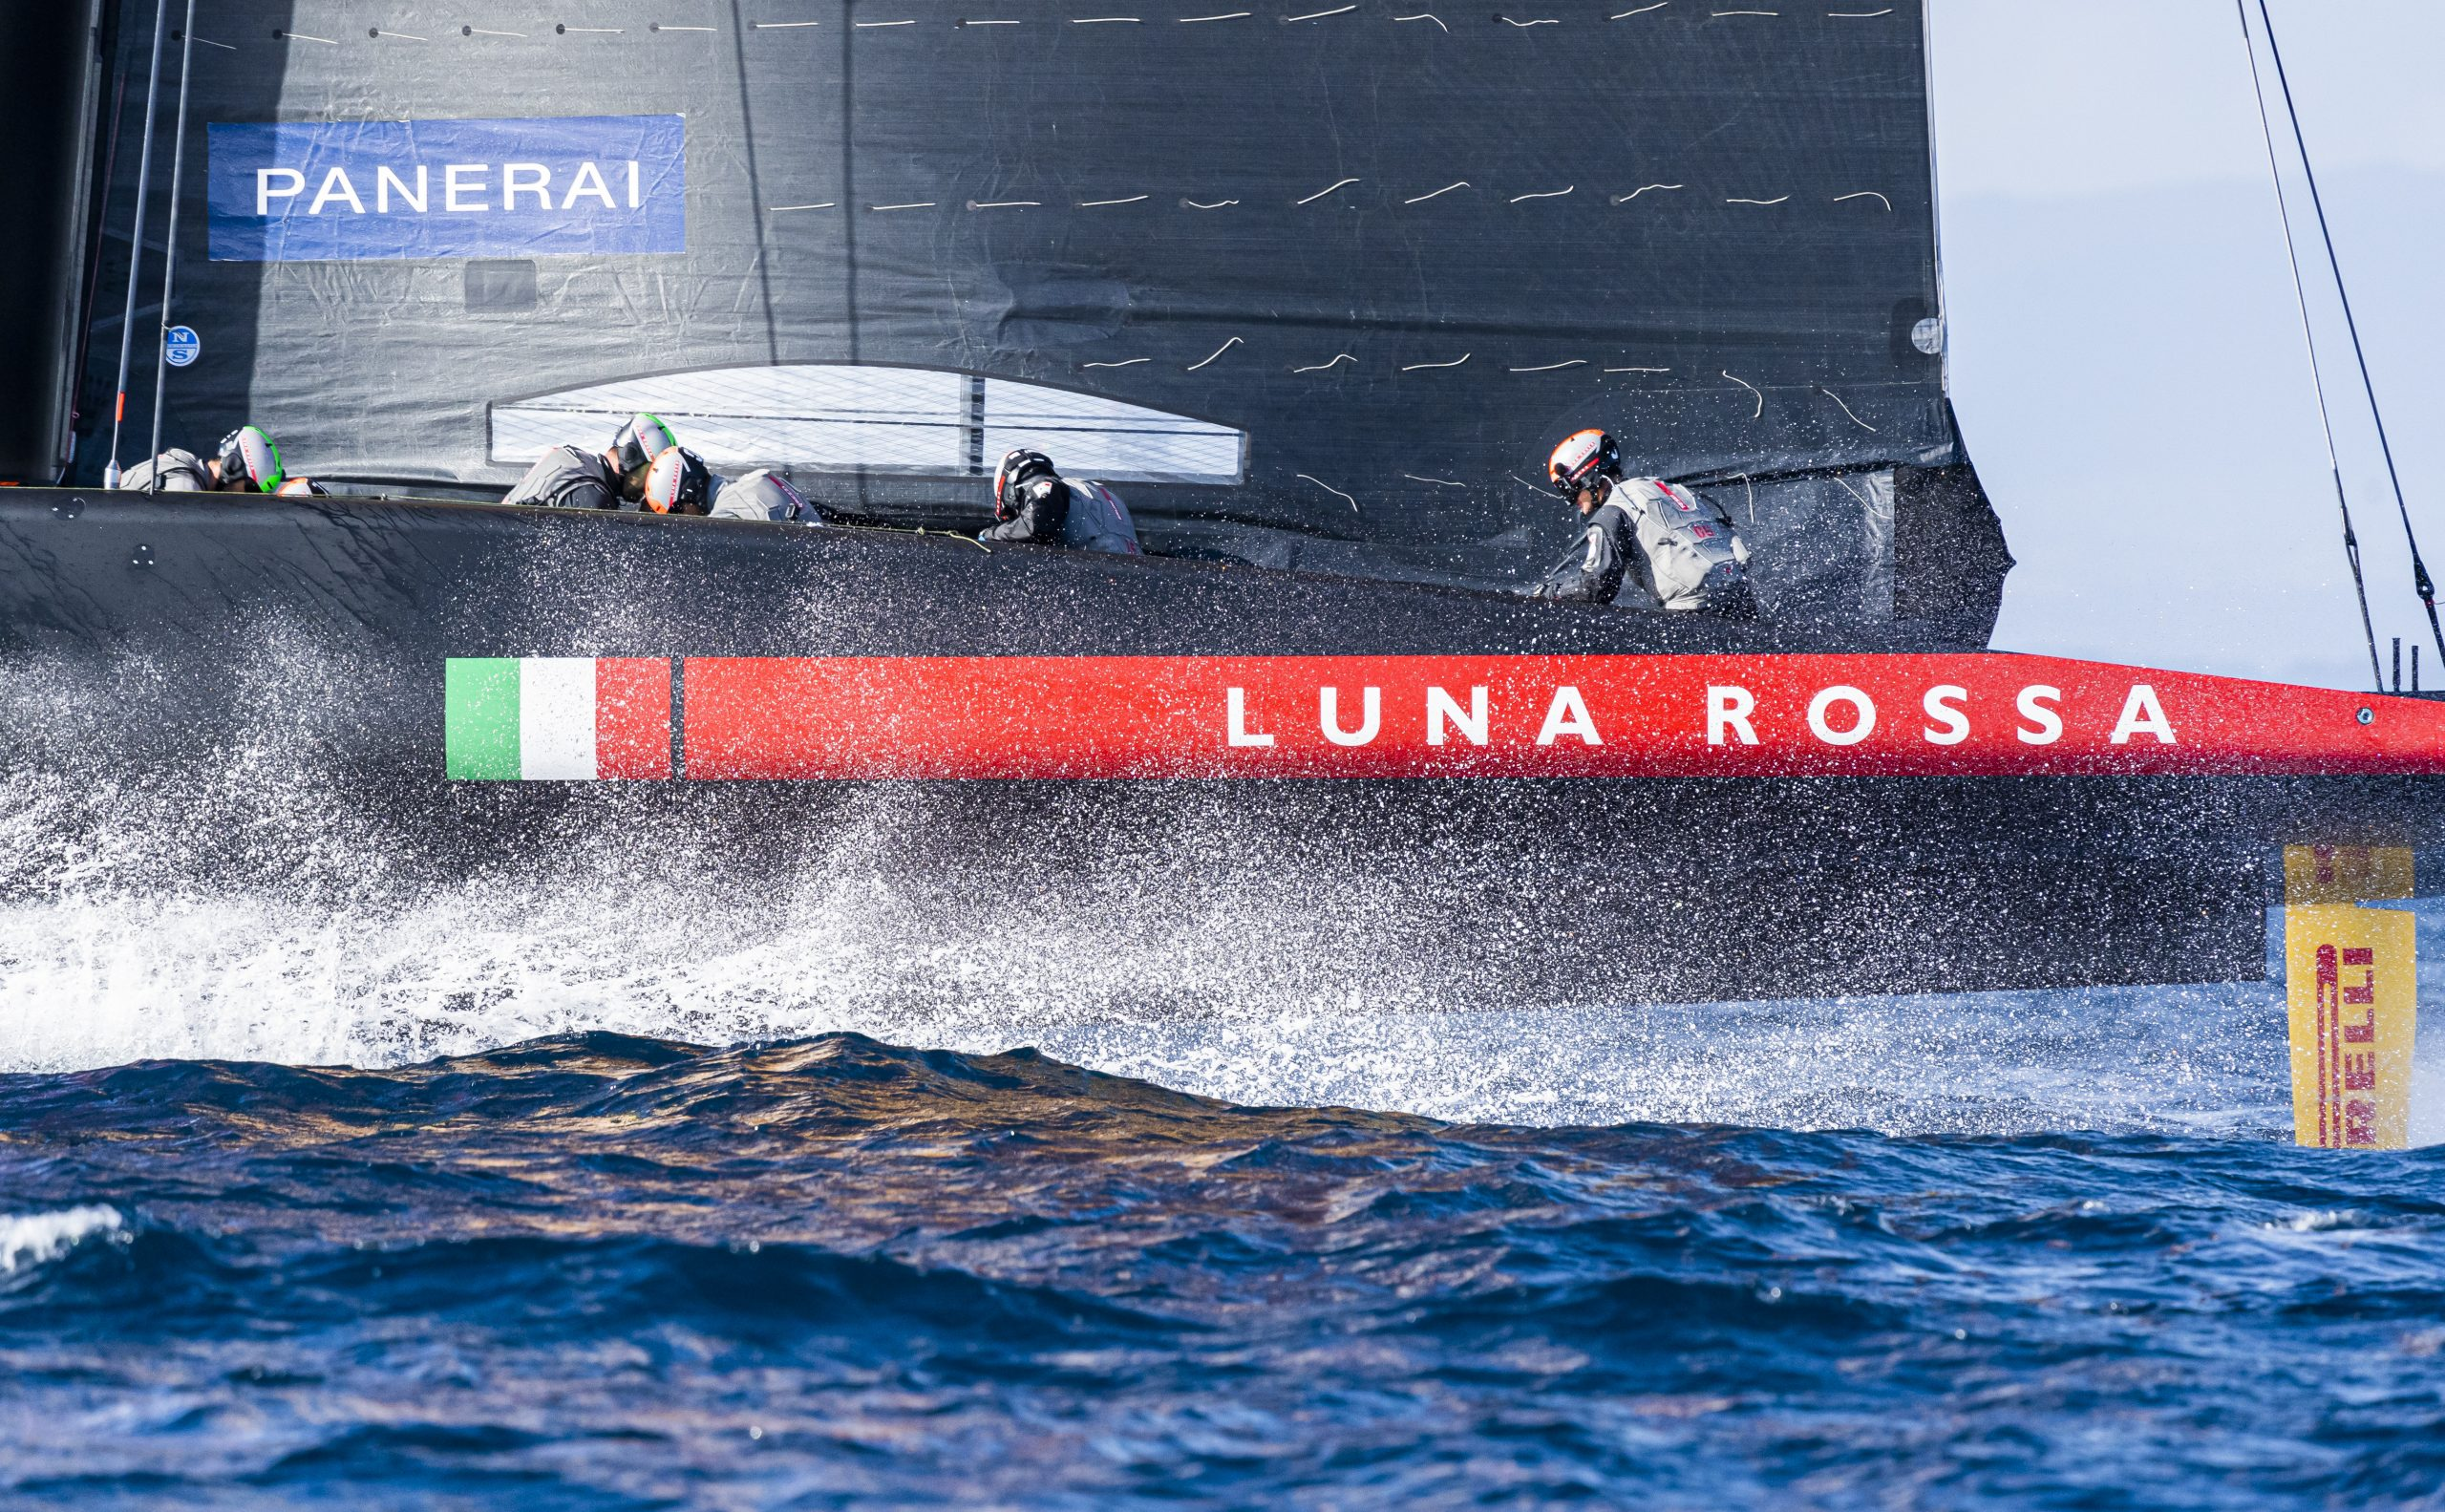 America's Cup : Luna Rossa, ready to ride the wave